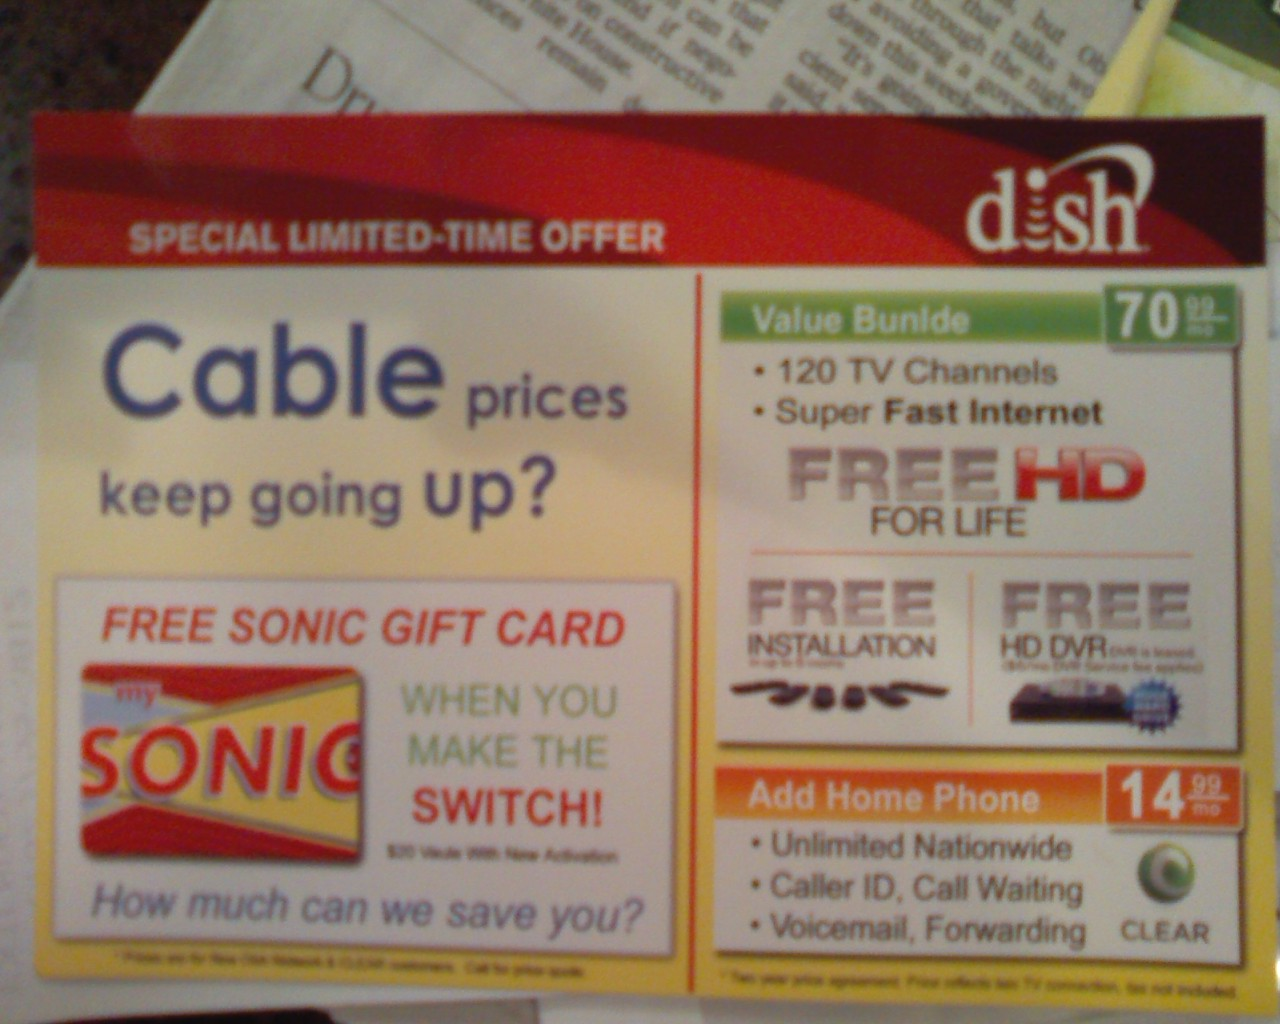 dish promo offers